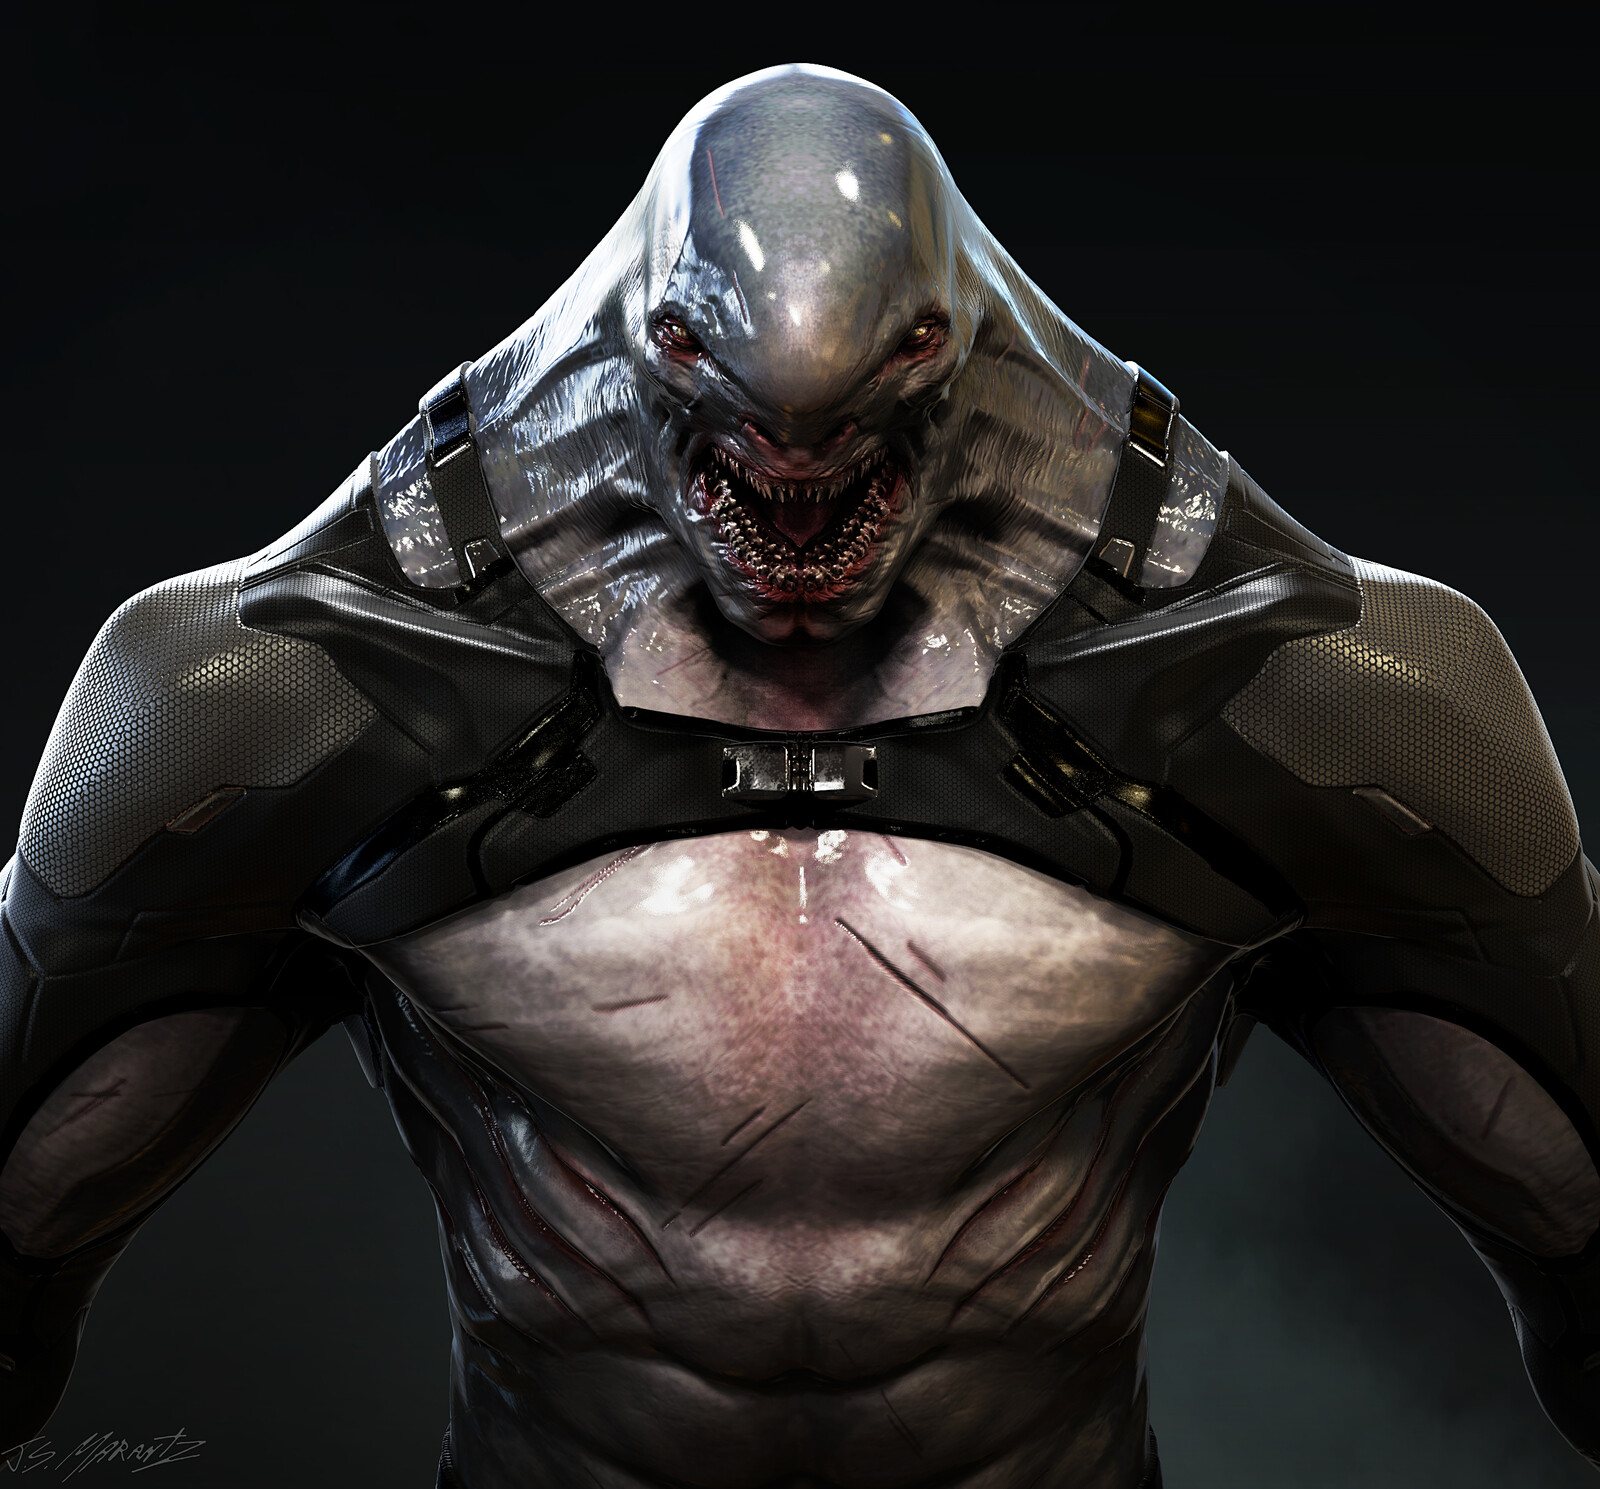 KING SHARK DESIGN for a cancelled game